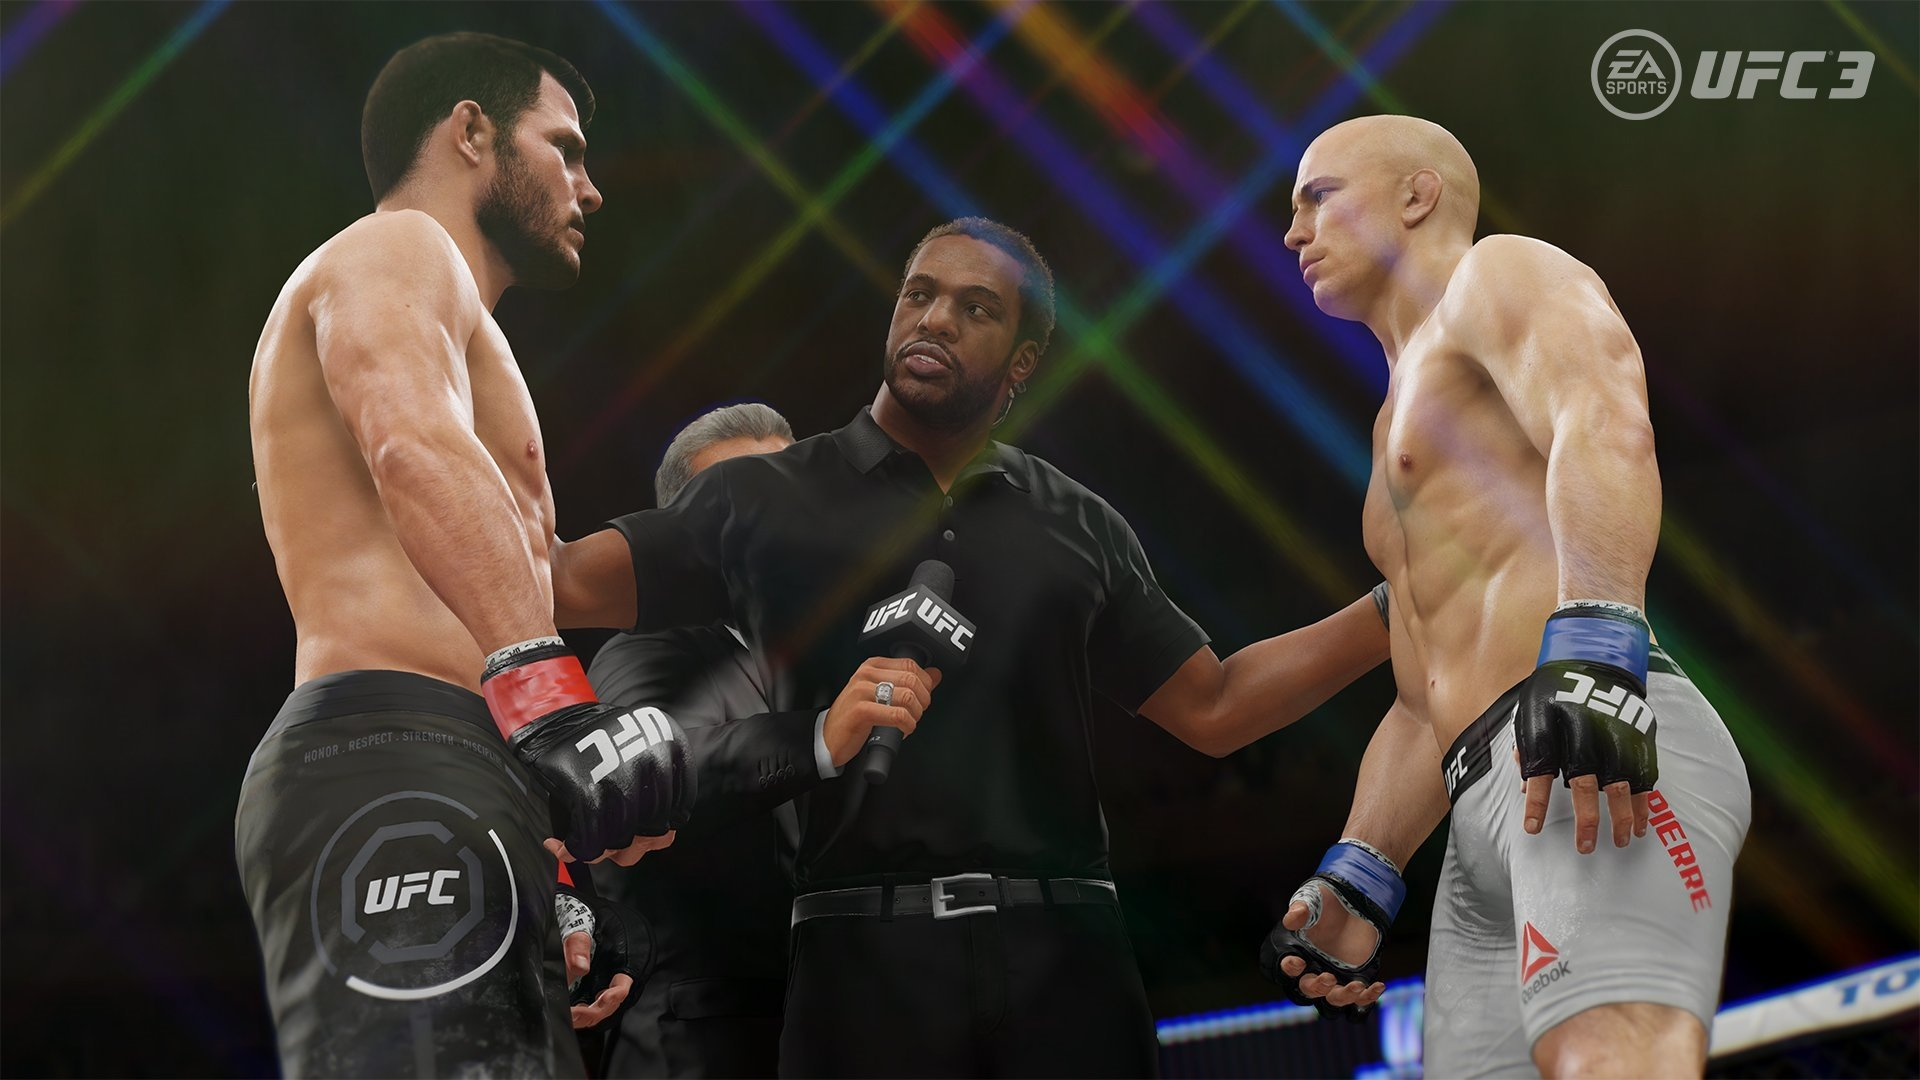 Ea sports ufc 3 full hd wallpaper and background image 1920x1080 video game ea sports ufc 3 wallpaper voltagebd Gallery